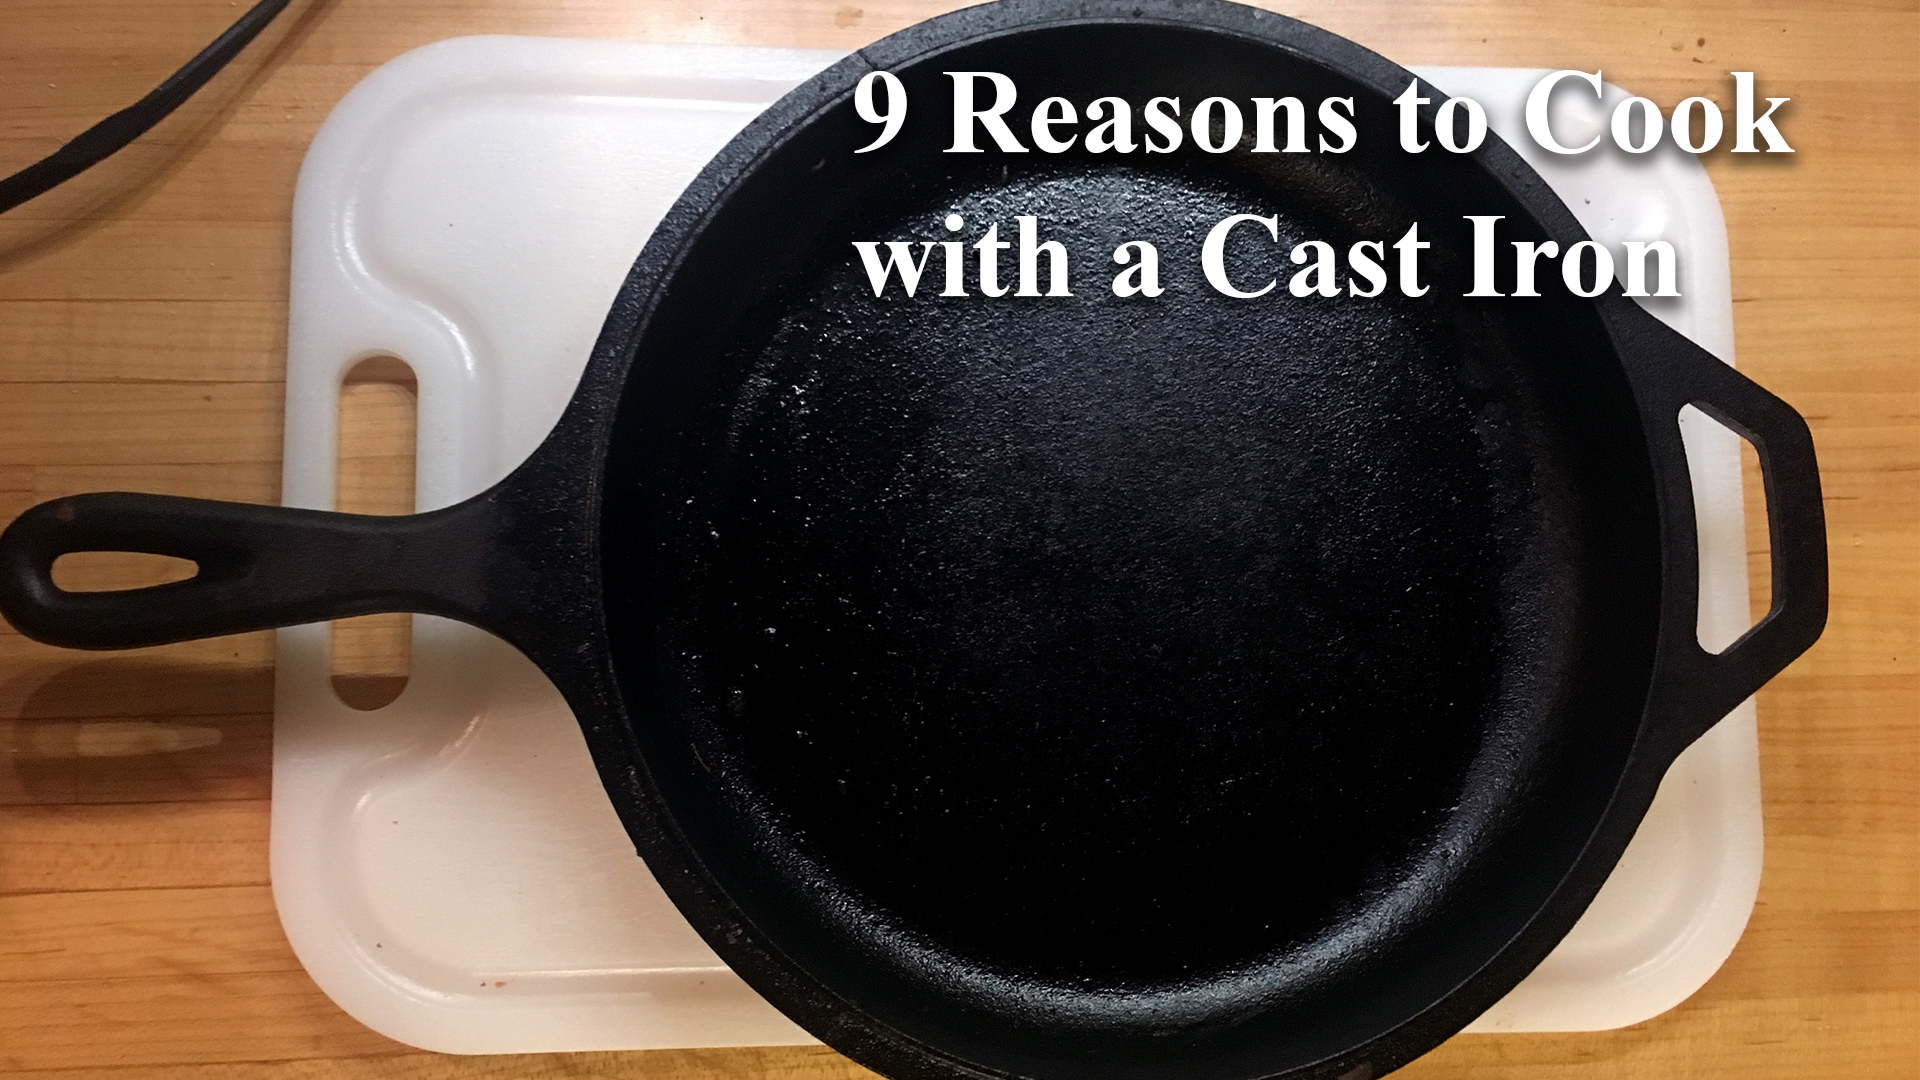 9 Reasons to Cook with a Cast Iron and Why You Should Too